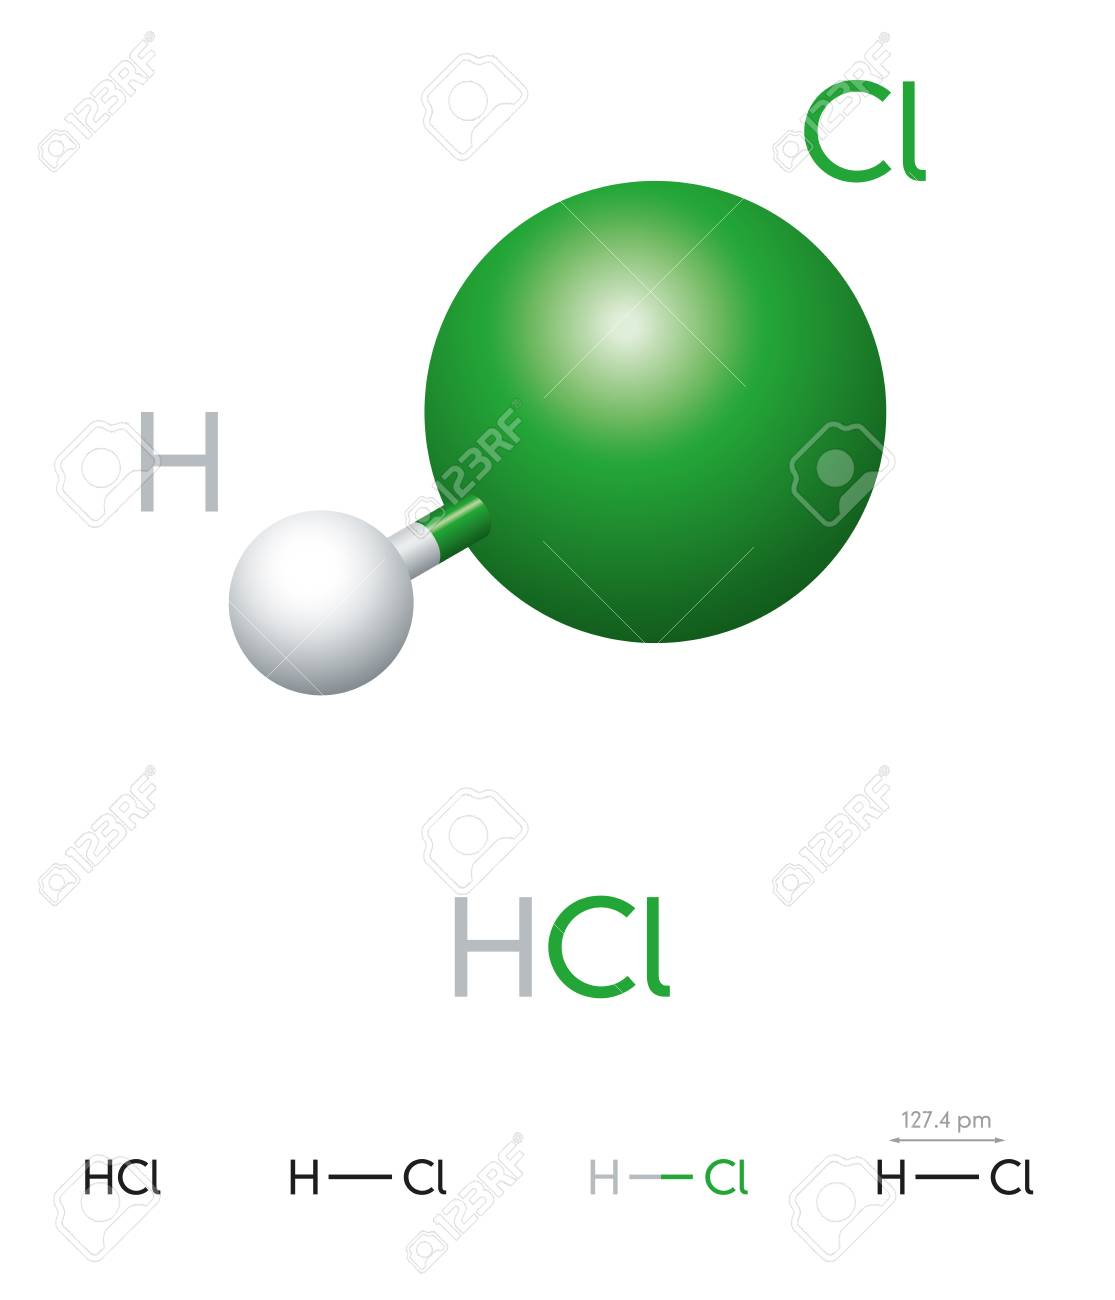 HCl. Hydrogen chloride. Molecule model, chemical formula, ball-and-stick model, geometric structure and structural formula. Hydrogen halide. Hydrochloric acid. Illustration on white background. Vector - 110188178